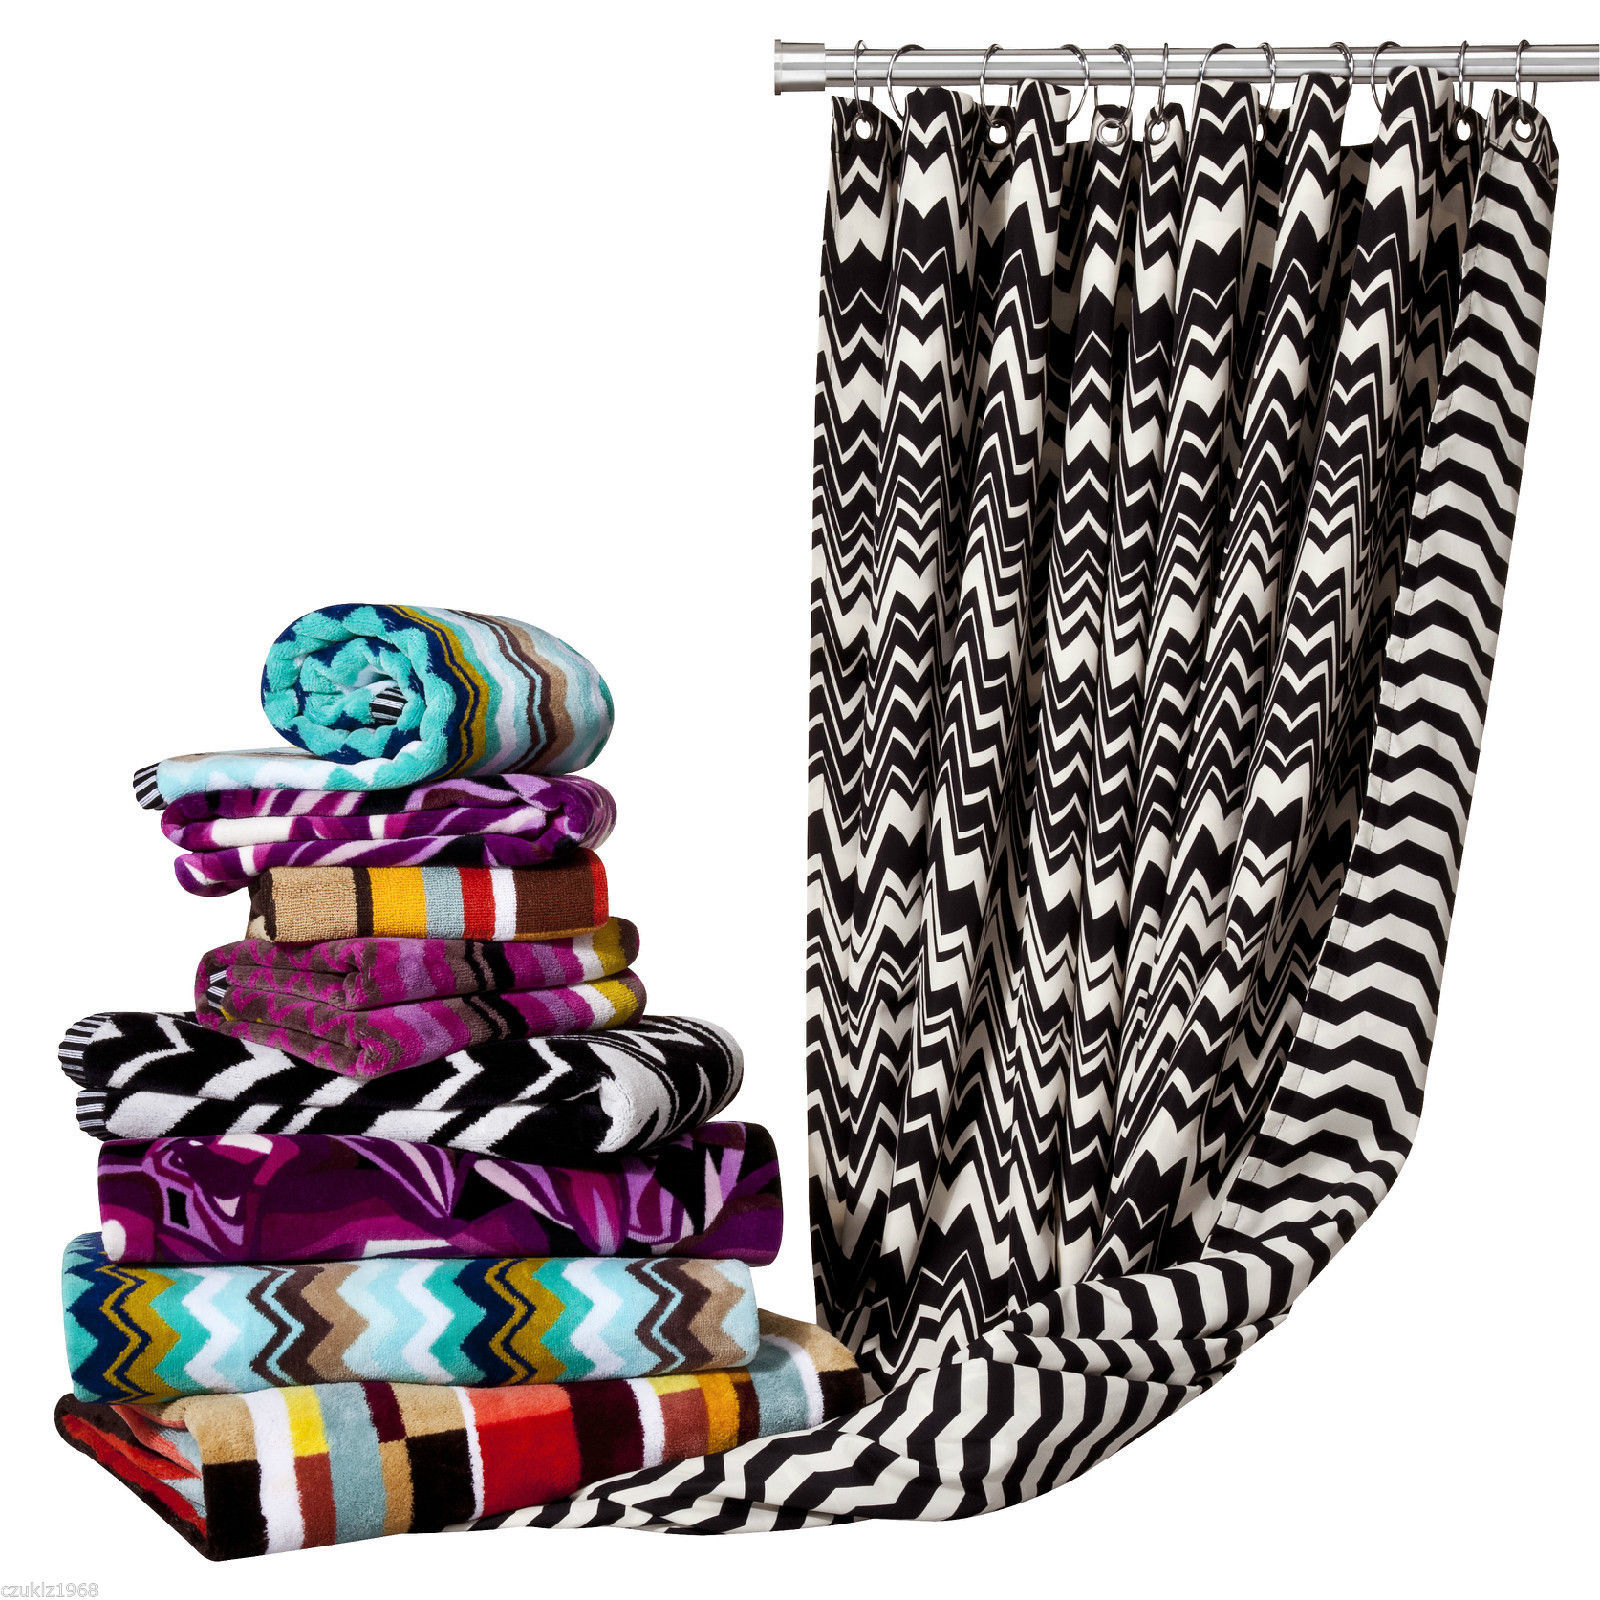 NEW Missoni Home Shower Curtain B&W Fabric and 50 similar items